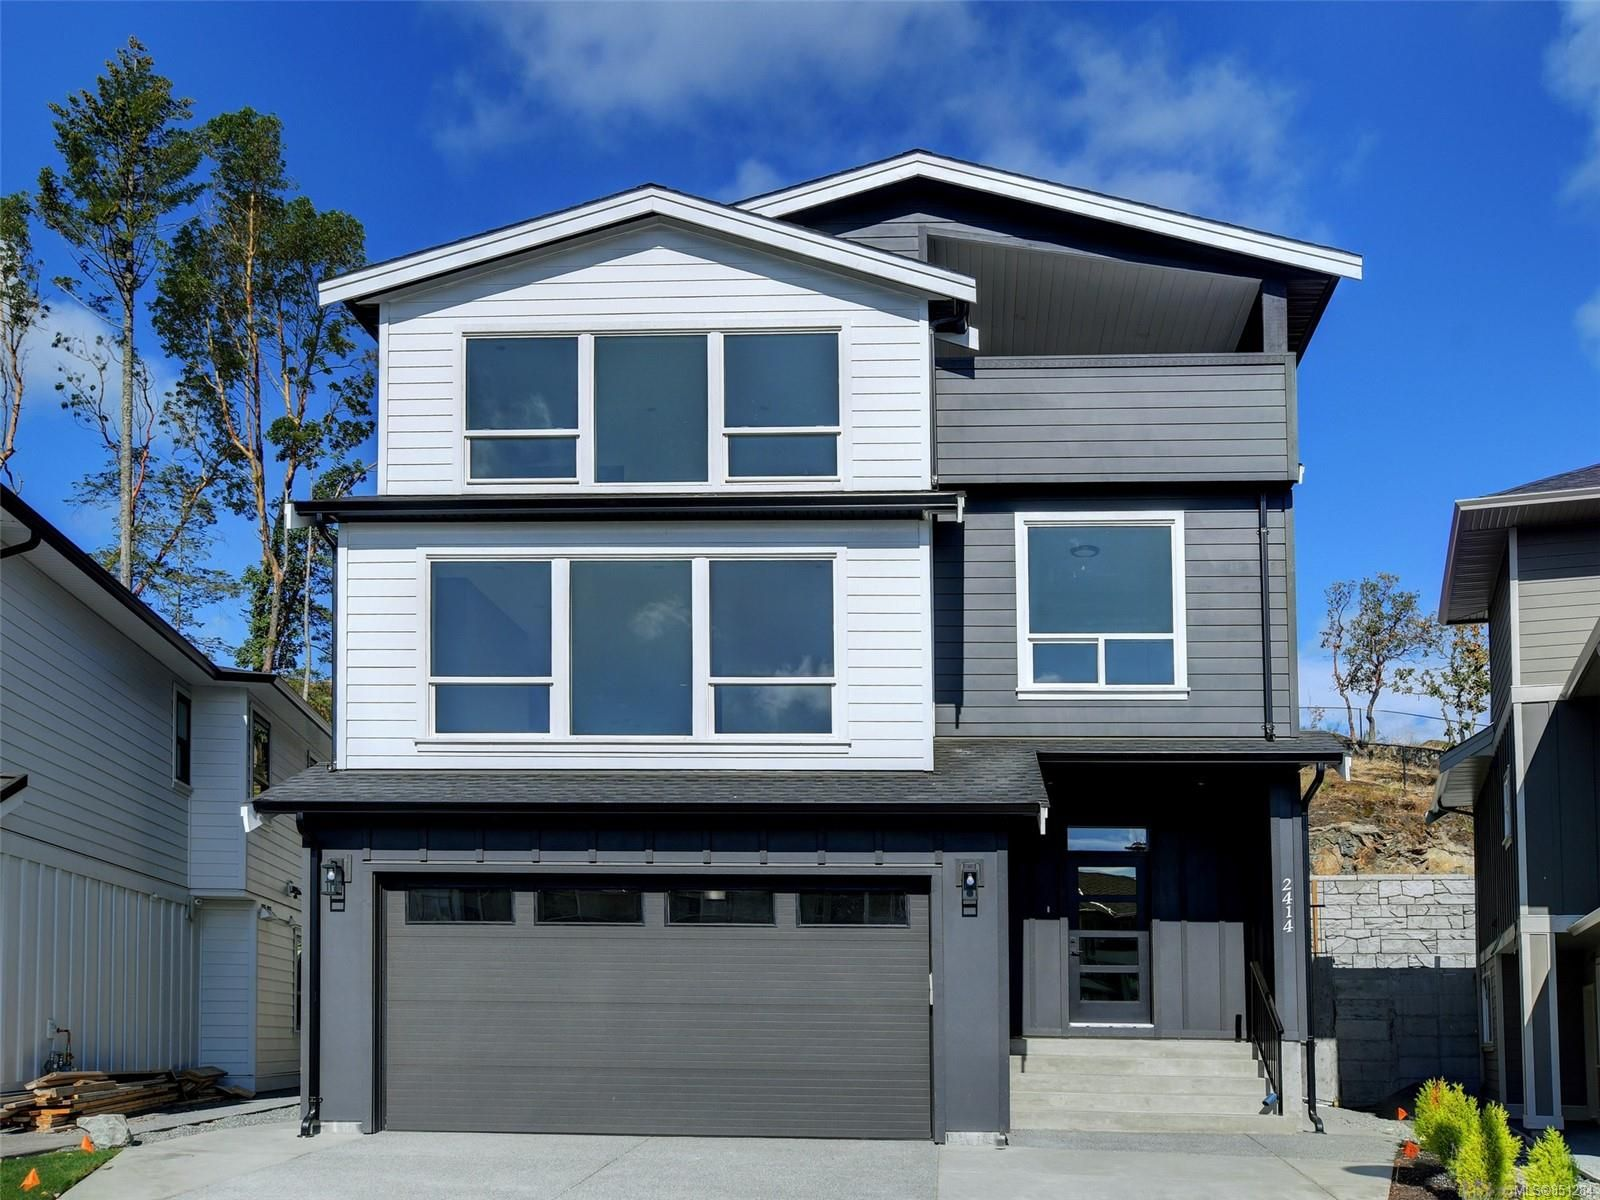 Main Photo: 2414 Azurite Cres in : La Bear Mountain House for sale (Langford)  : MLS®# 851284